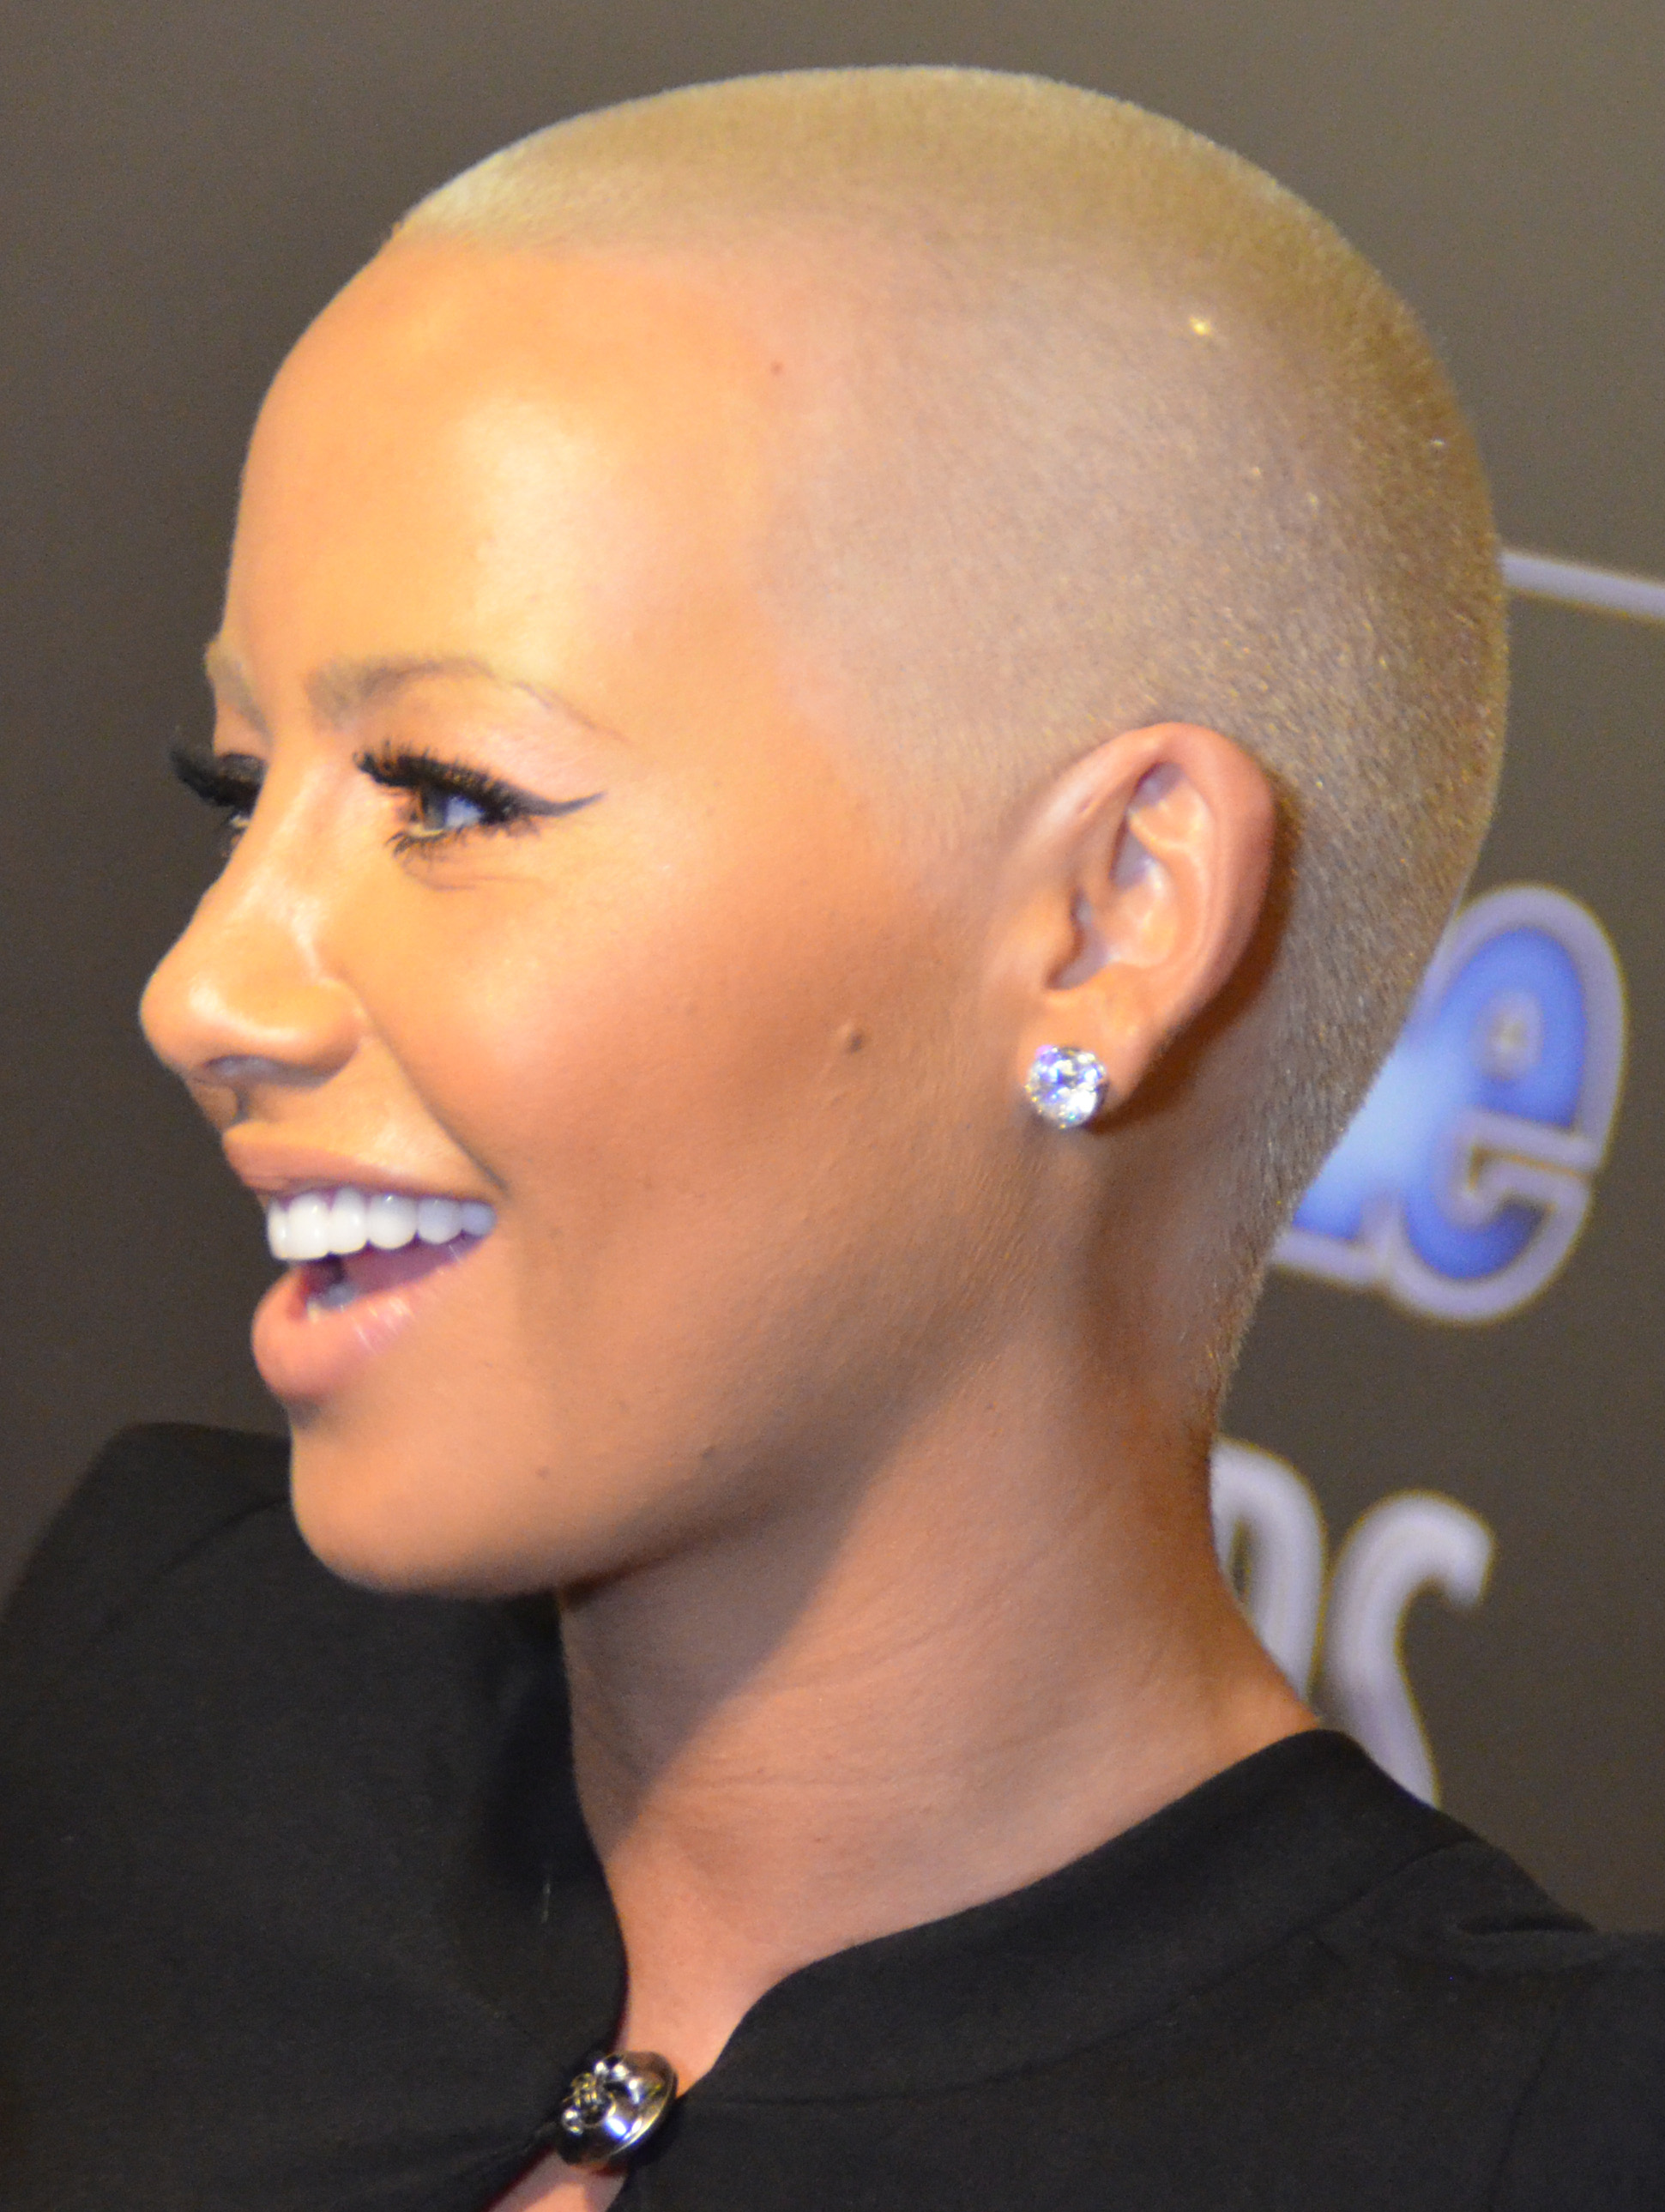 The 34-year old daughter of father Jon Testa and mother Shauna Soares Amber Rose in 2018 photo. Amber Rose earned a  million dollar salary - leaving the net worth at 5 million in 2018